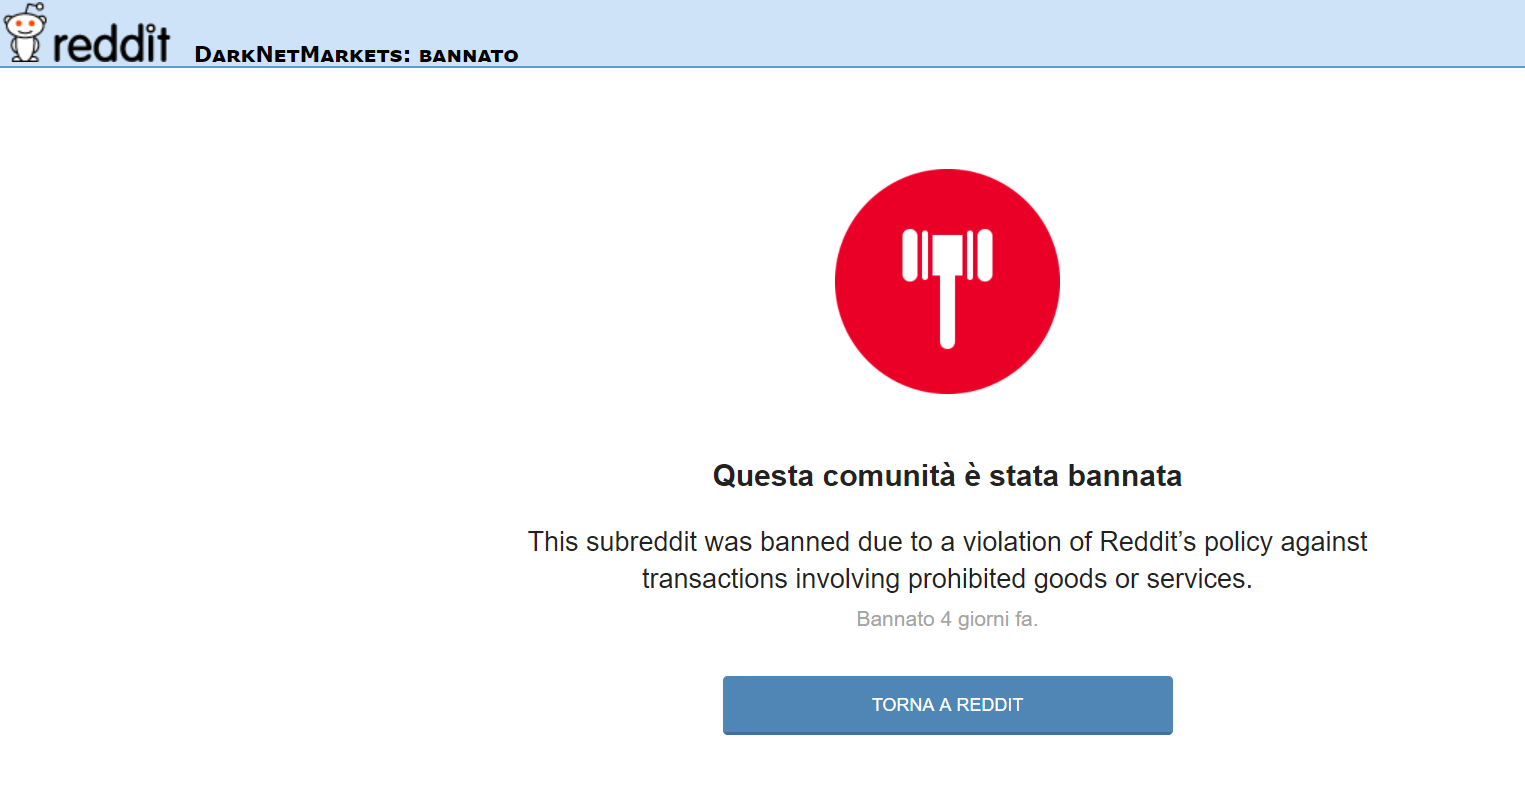 Reddit banned the biggest Darknet markets subreddit /R/DarkNetmarkets